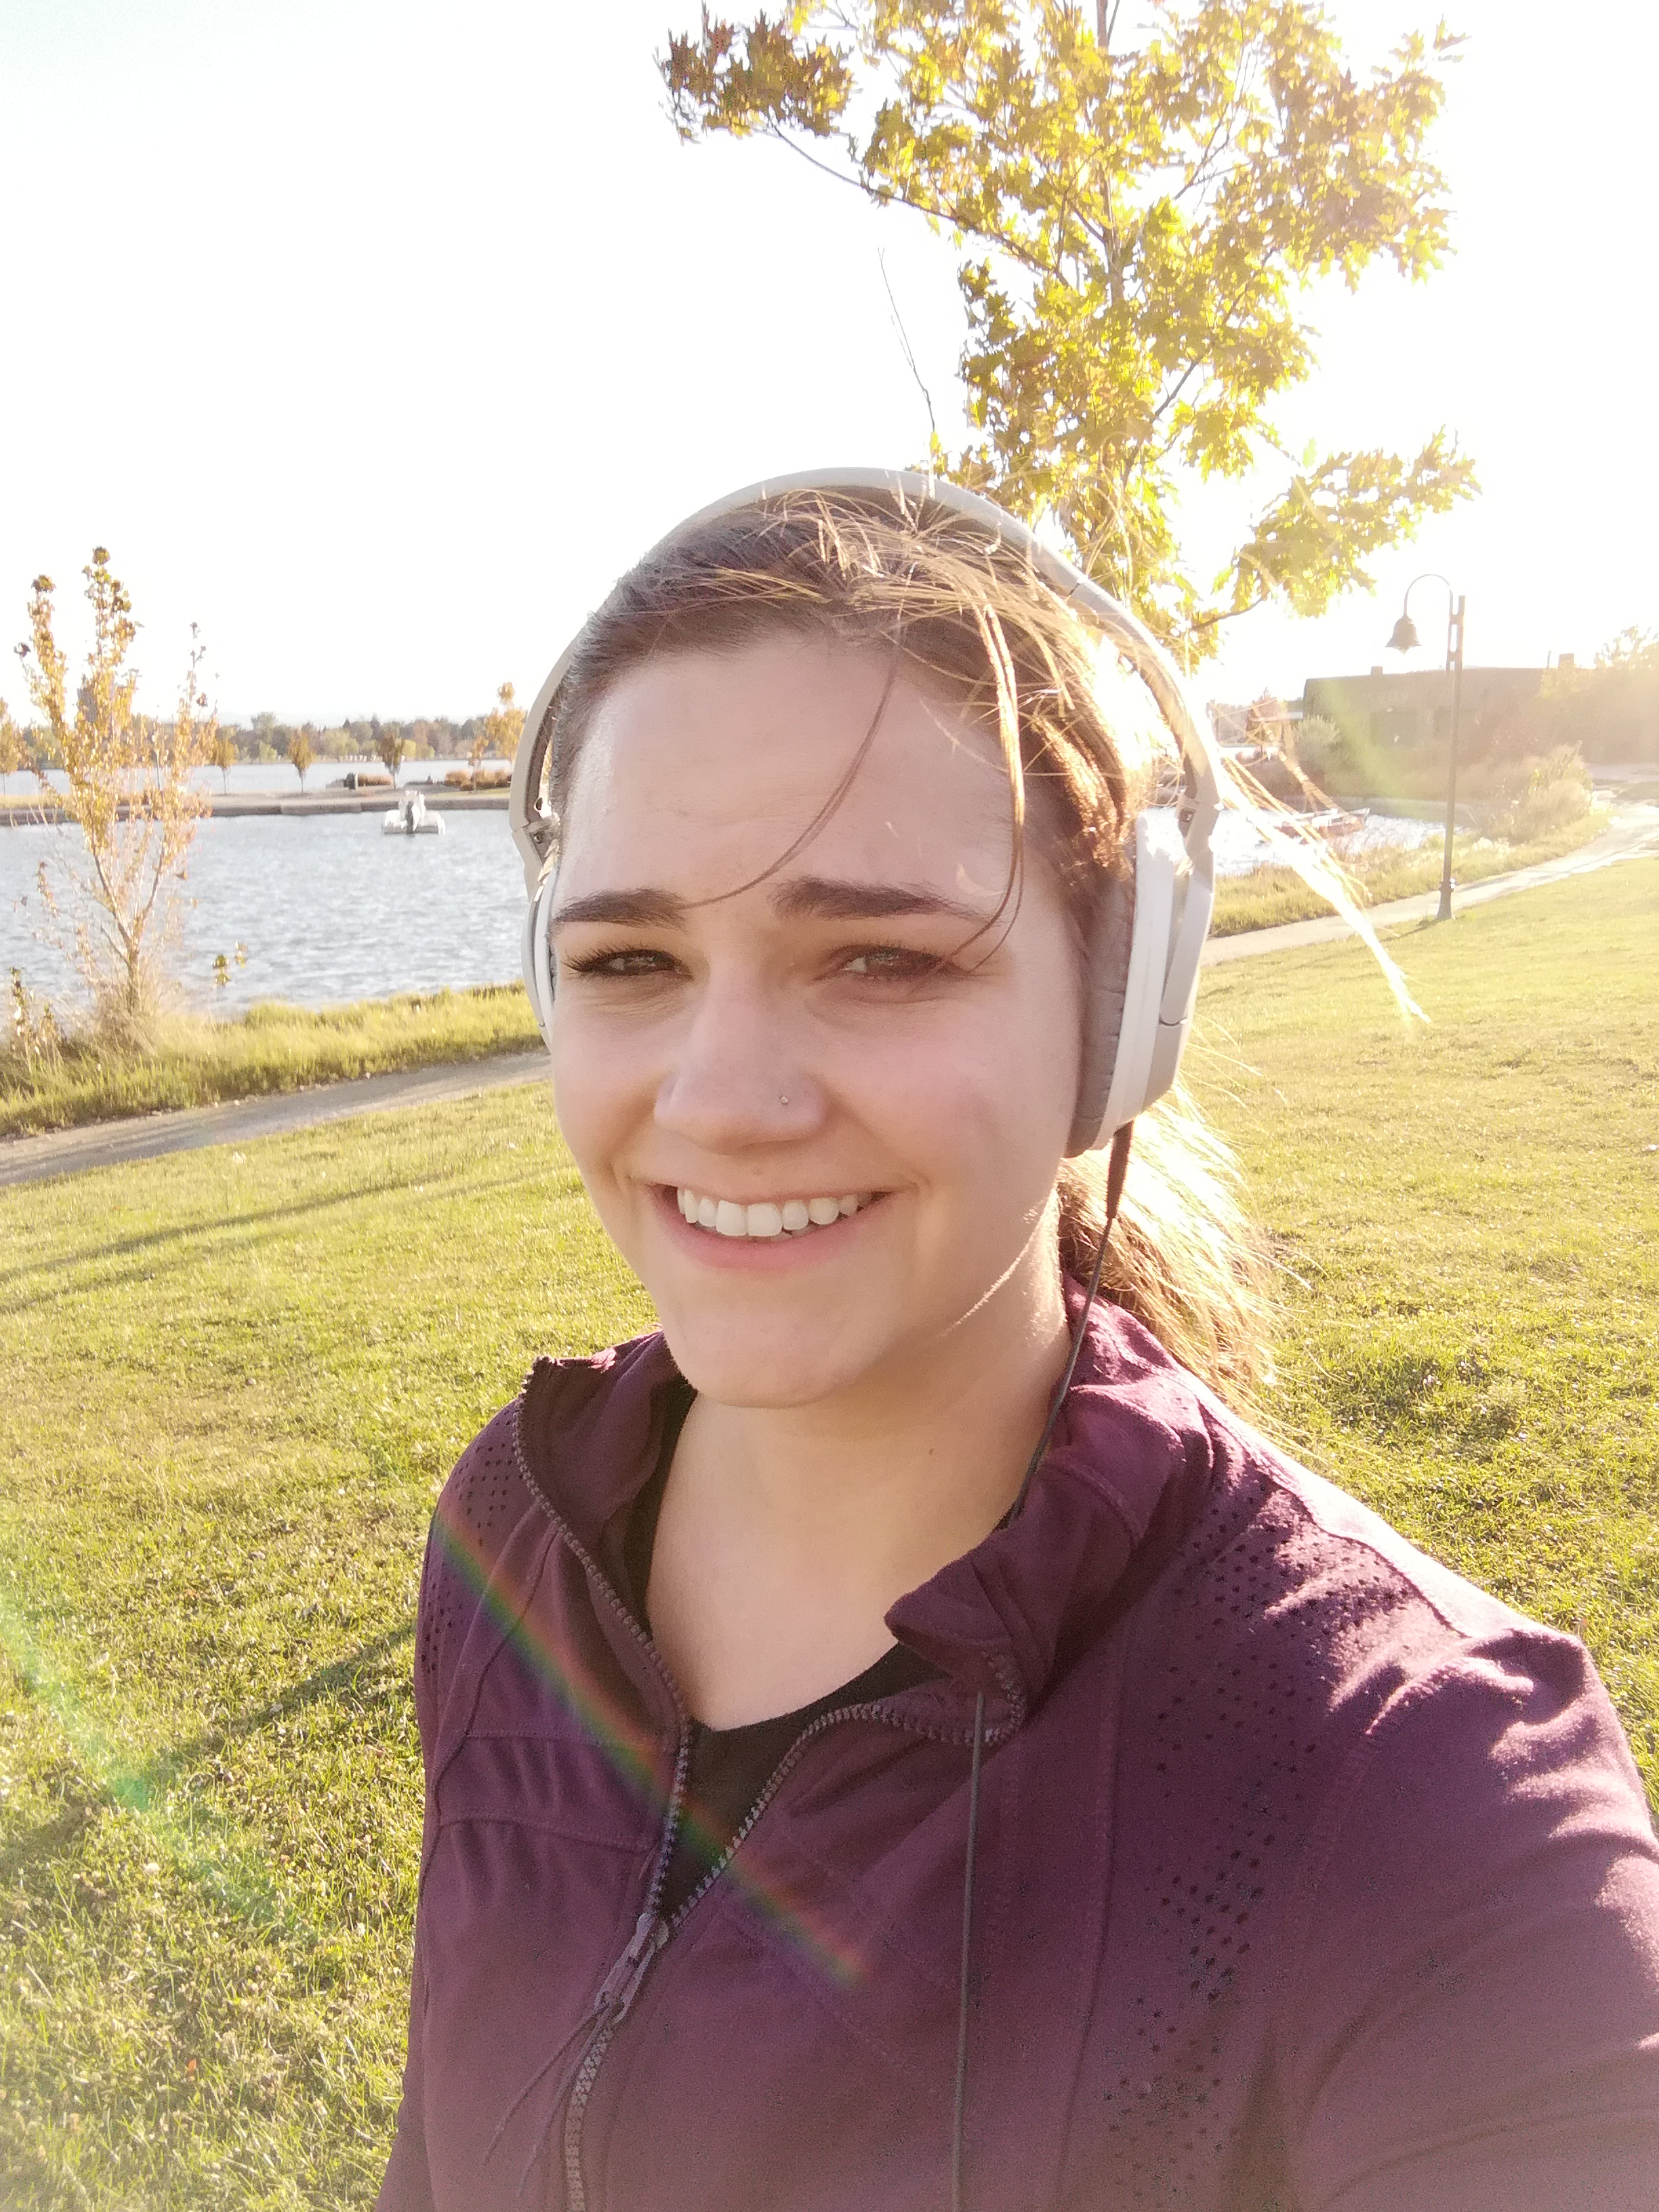 Sweaty person jogging around a lake.